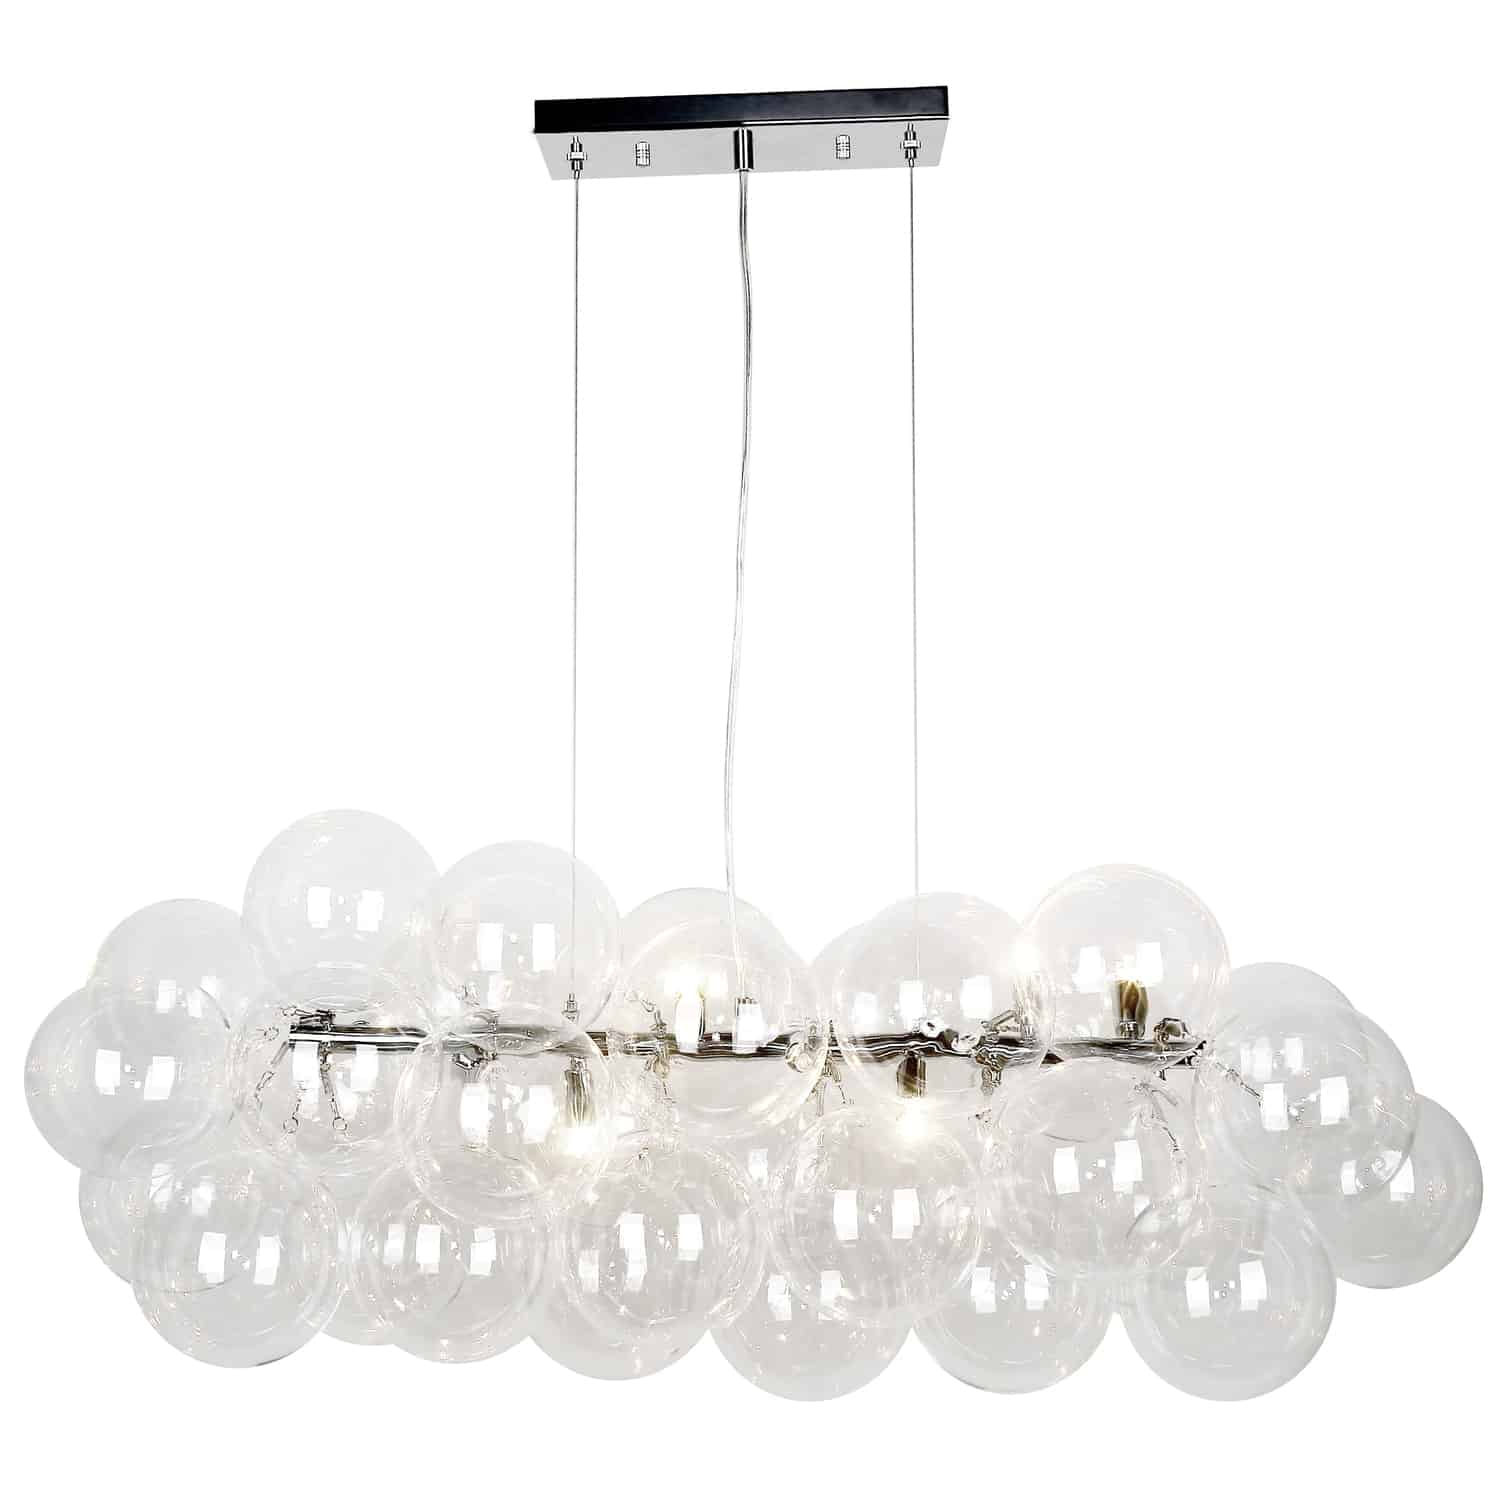 10 Light Halogen Horizontal Pendant, Polished Chrome with Clear Glass